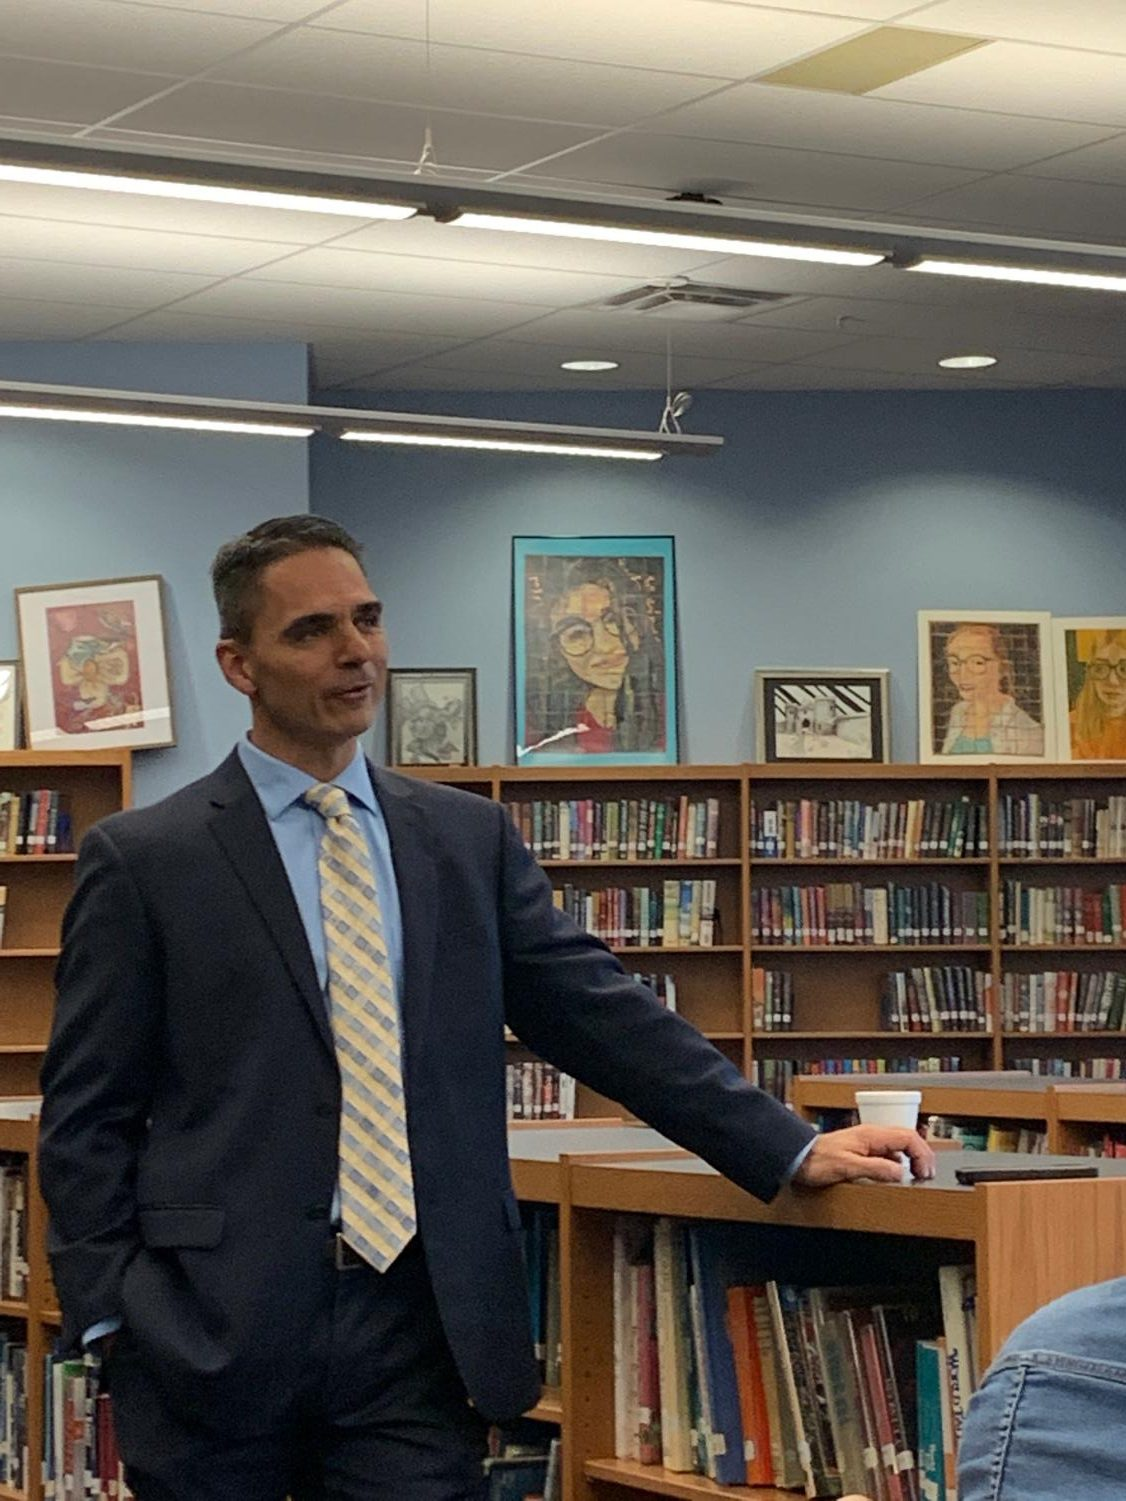 Dr. Guidry addresses faculty on April 3, 2019 in library